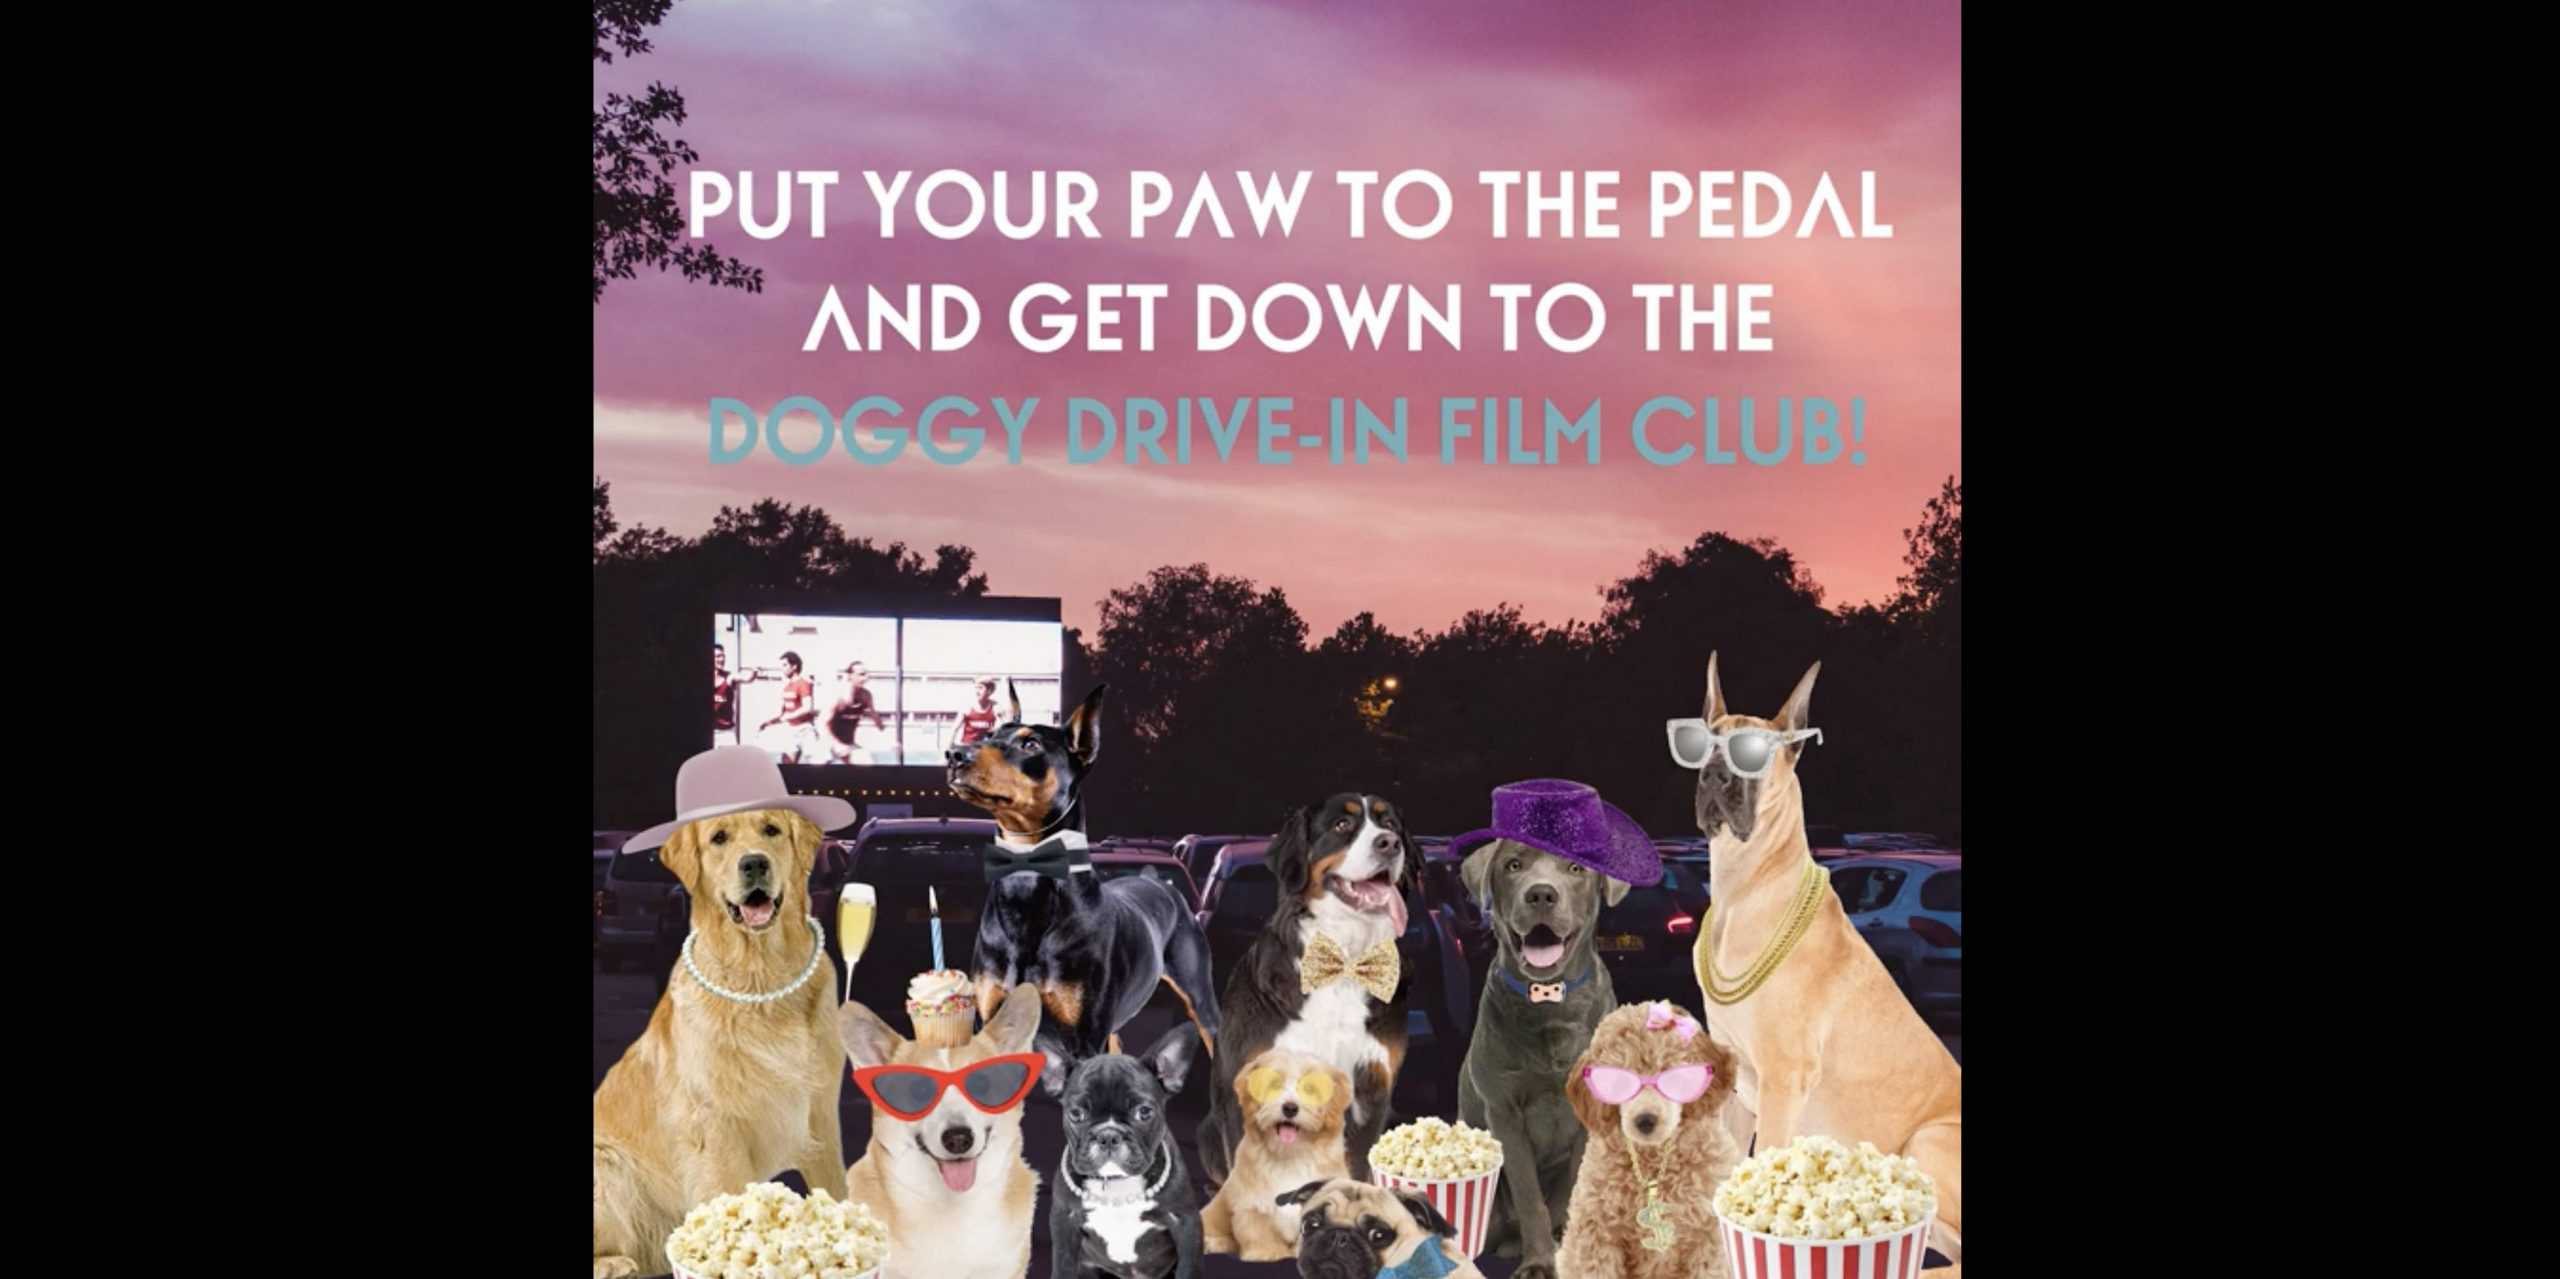 Doggy Drive In Film Club Alexandra Palace - Rooftop Film Club